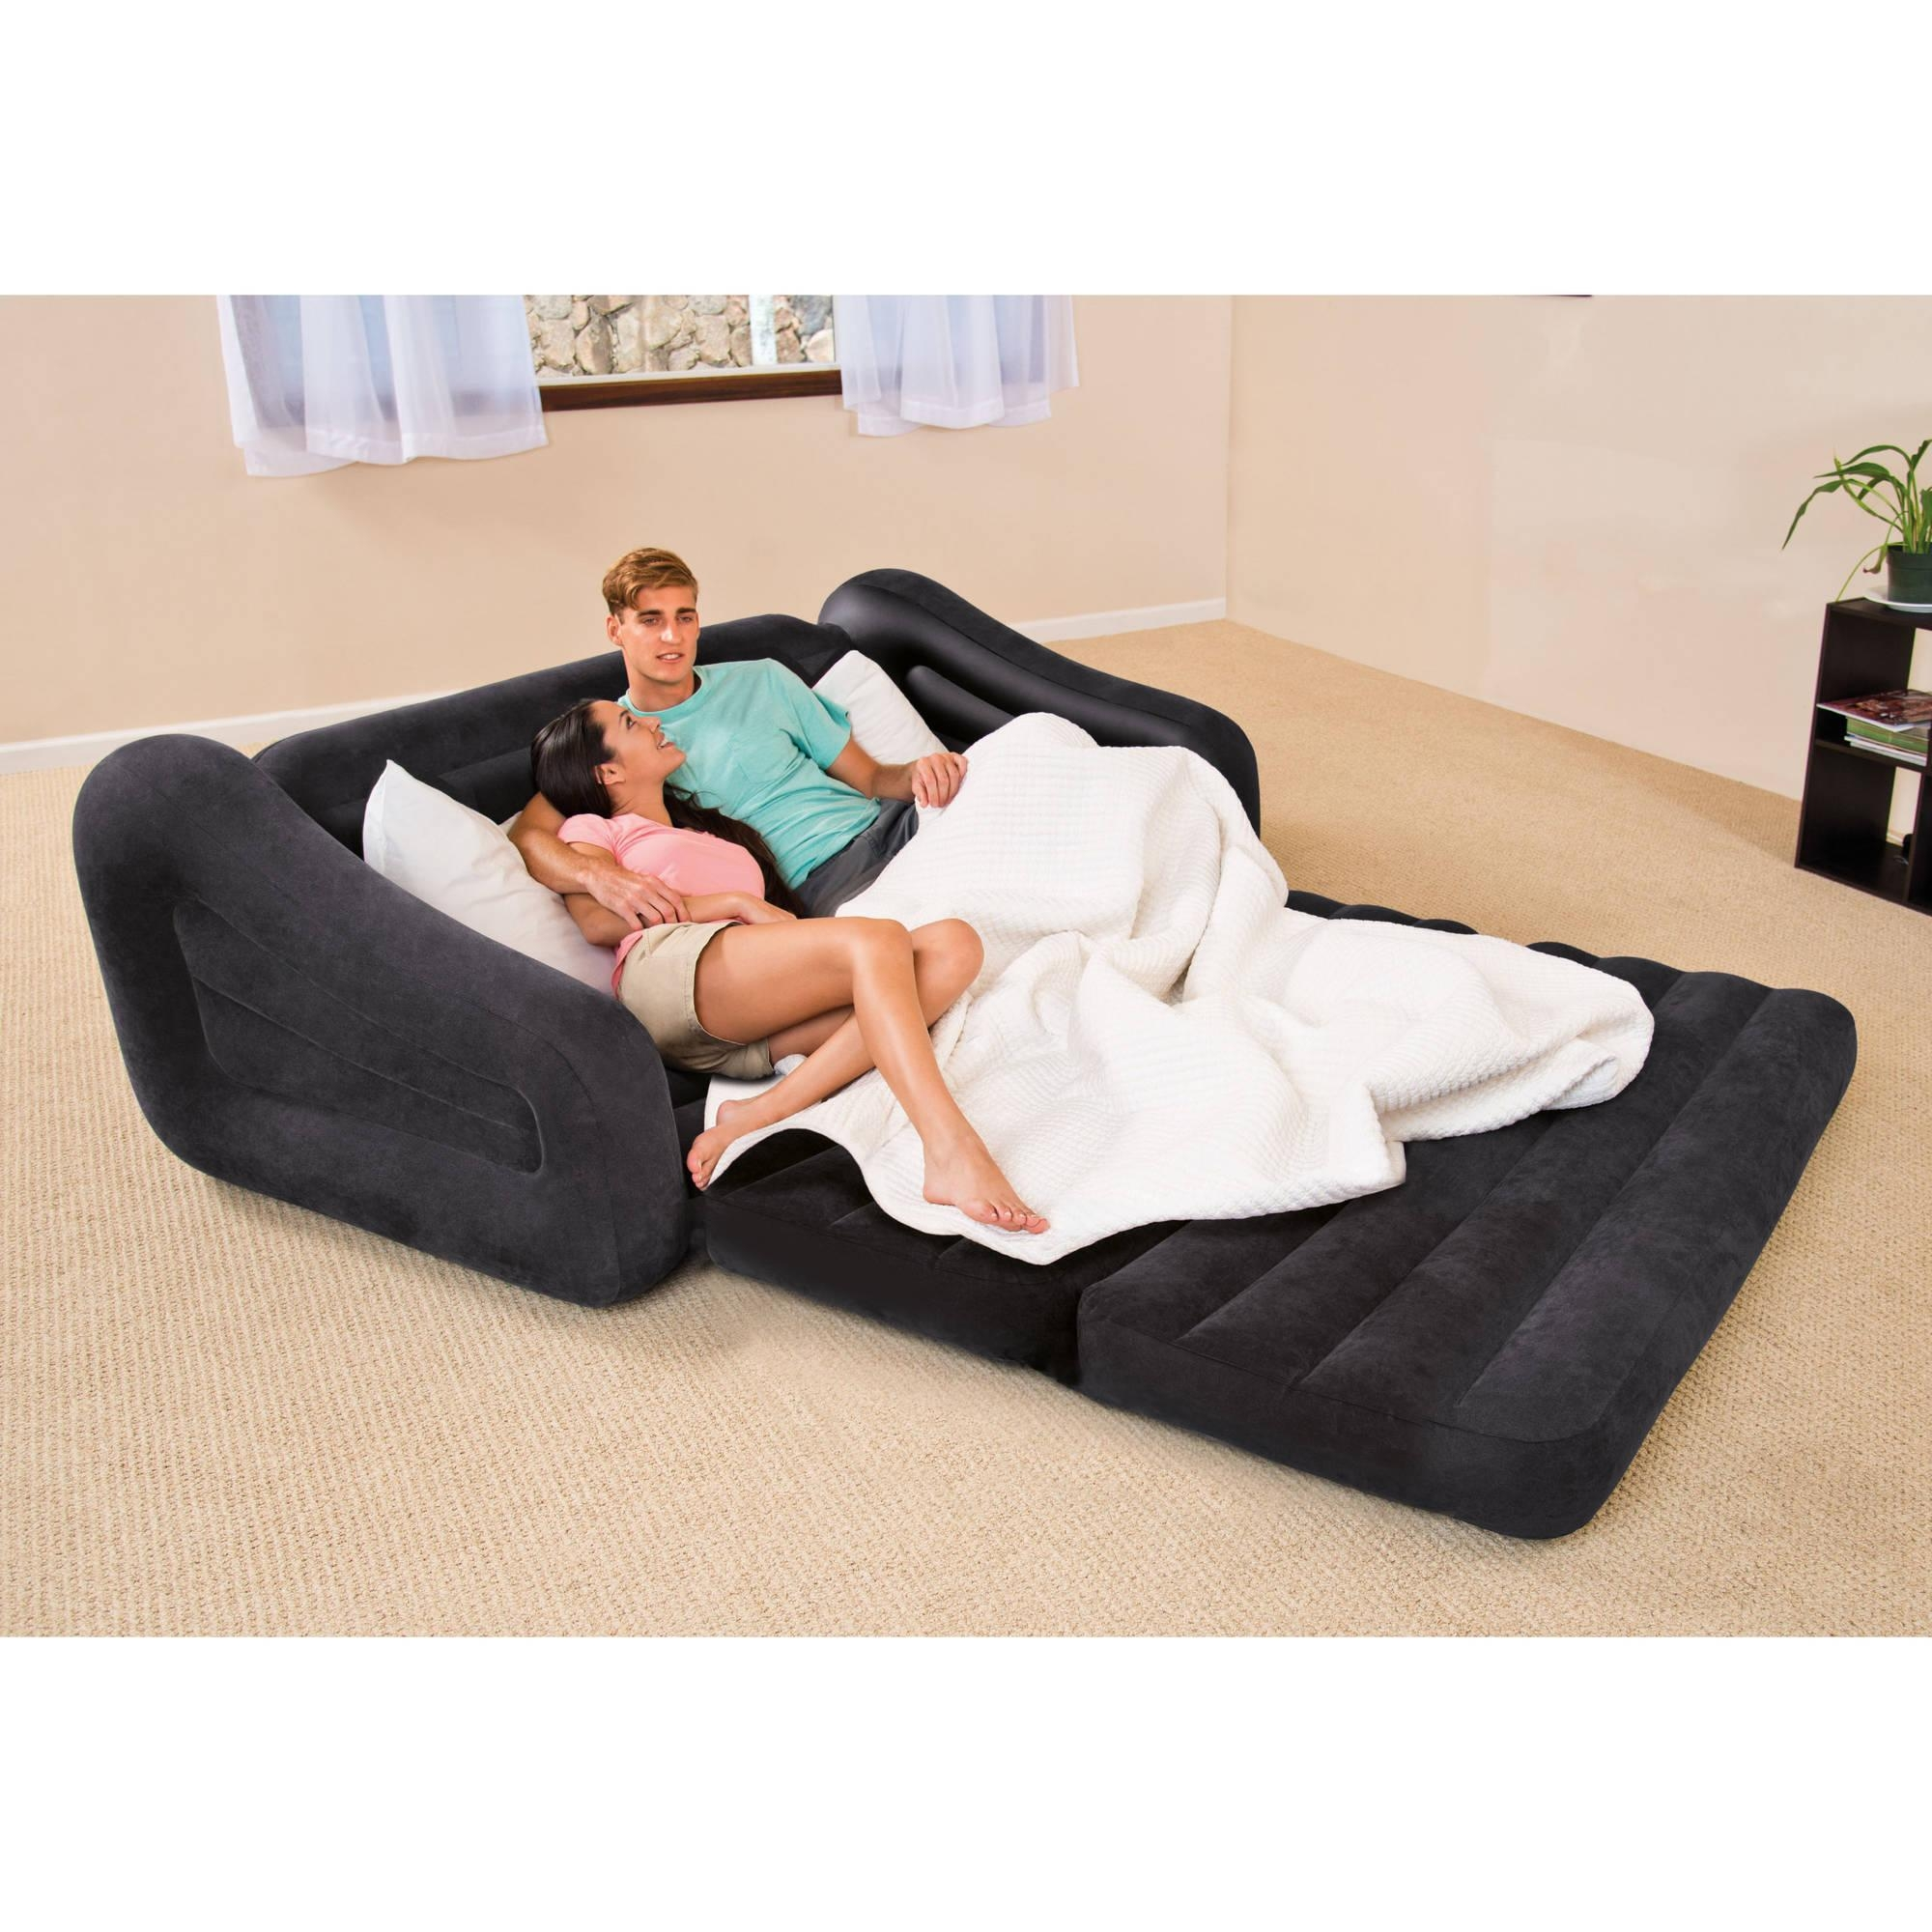 Intex Queen Inflatable Pull Out Sofa Bed – Walmart For Intex Air Sofa Beds (View 14 of 20)